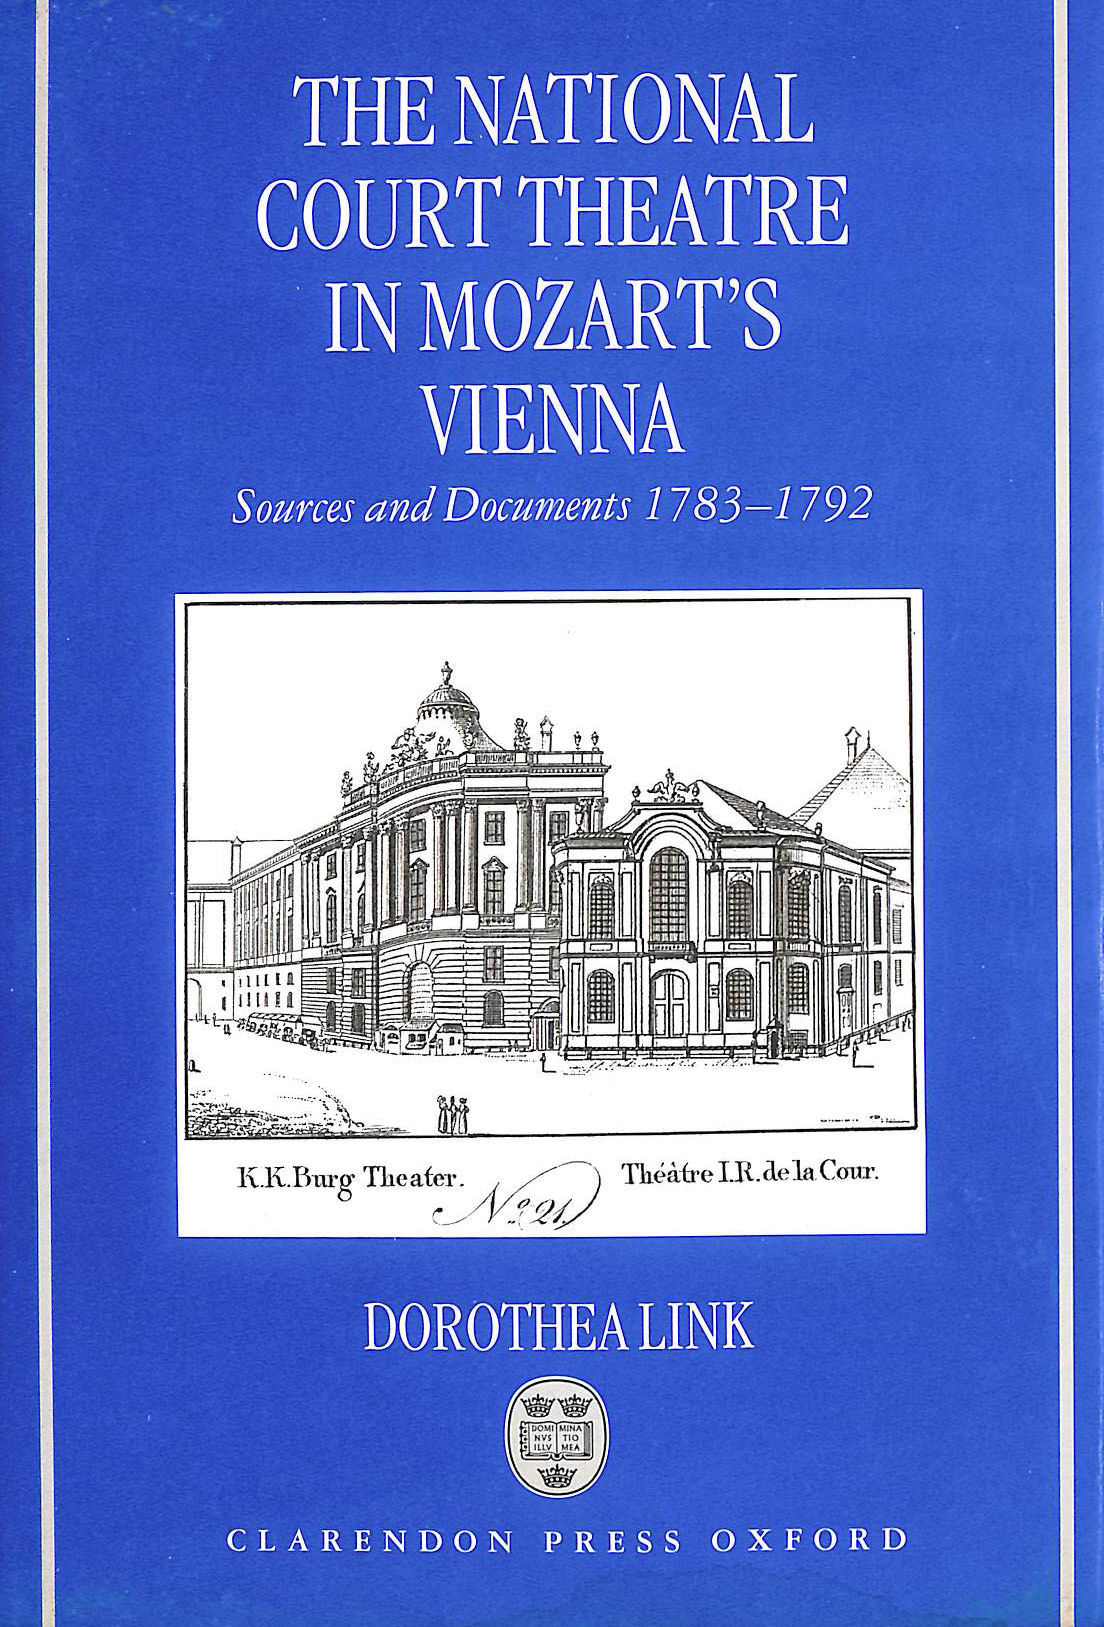 Image for The National Court Theatre in Mozart's Vienna: Sources and Documents 1783-1792: Sources and Documents, 1783-92